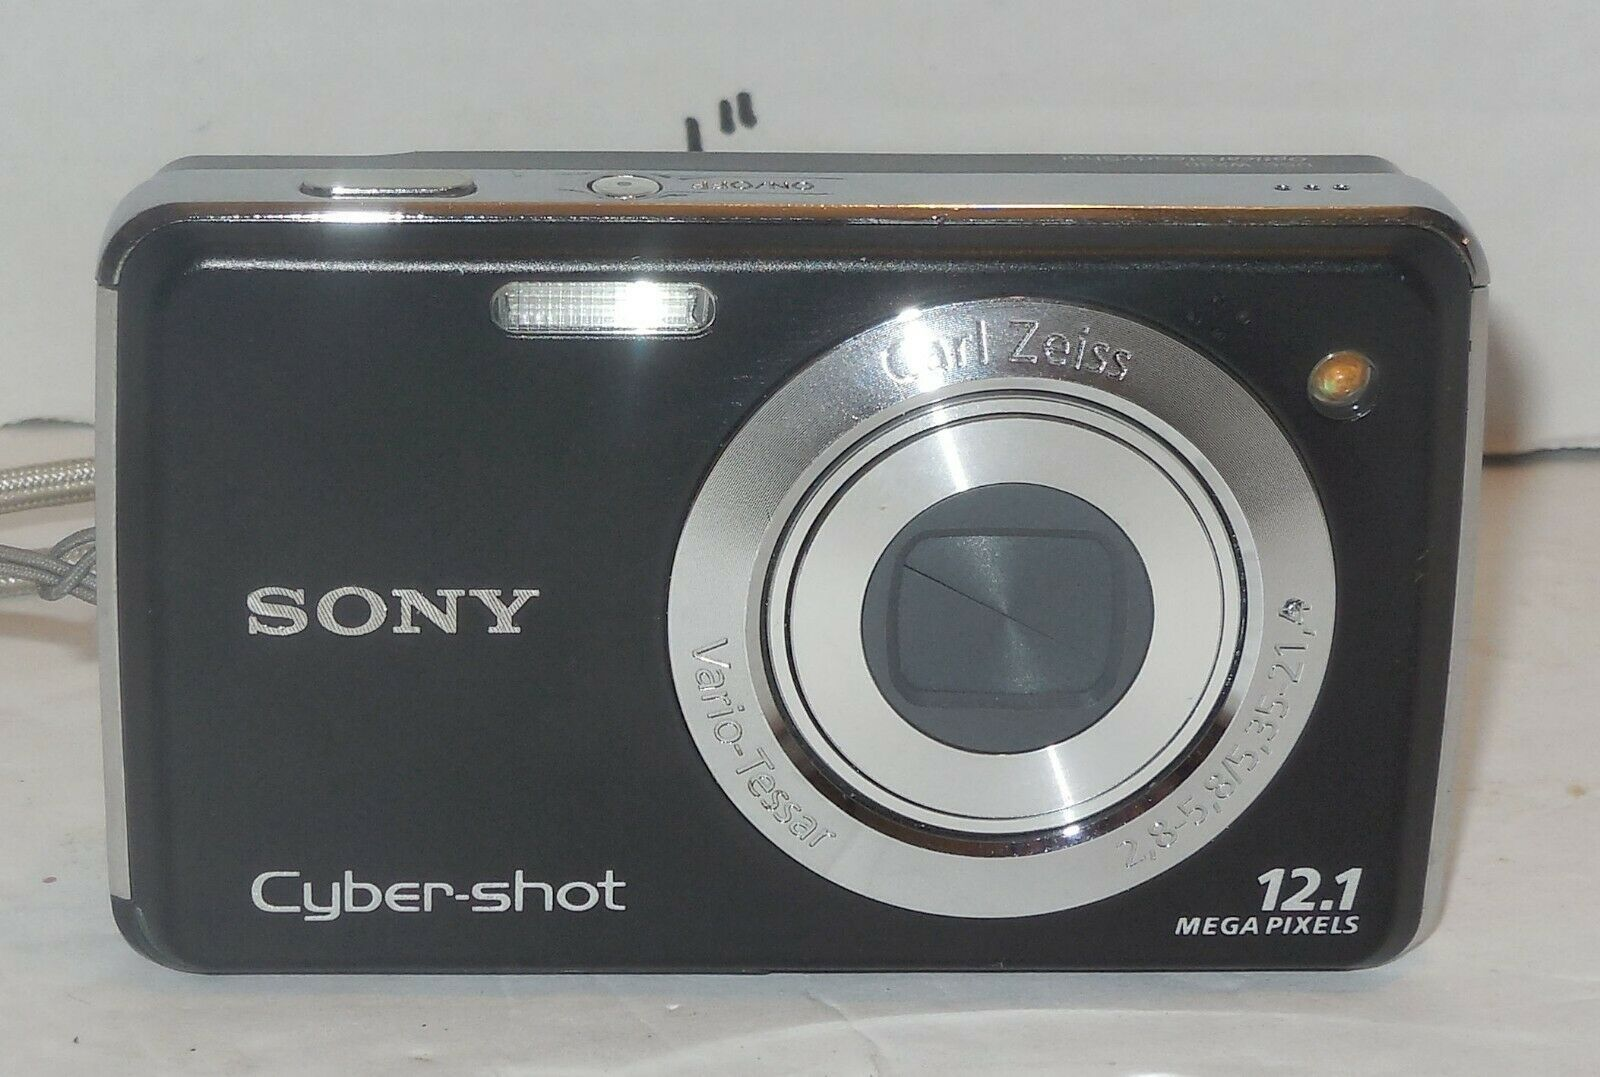 Primary image for SONY CyberShot DSC-W230 12MP Digital Camera Black